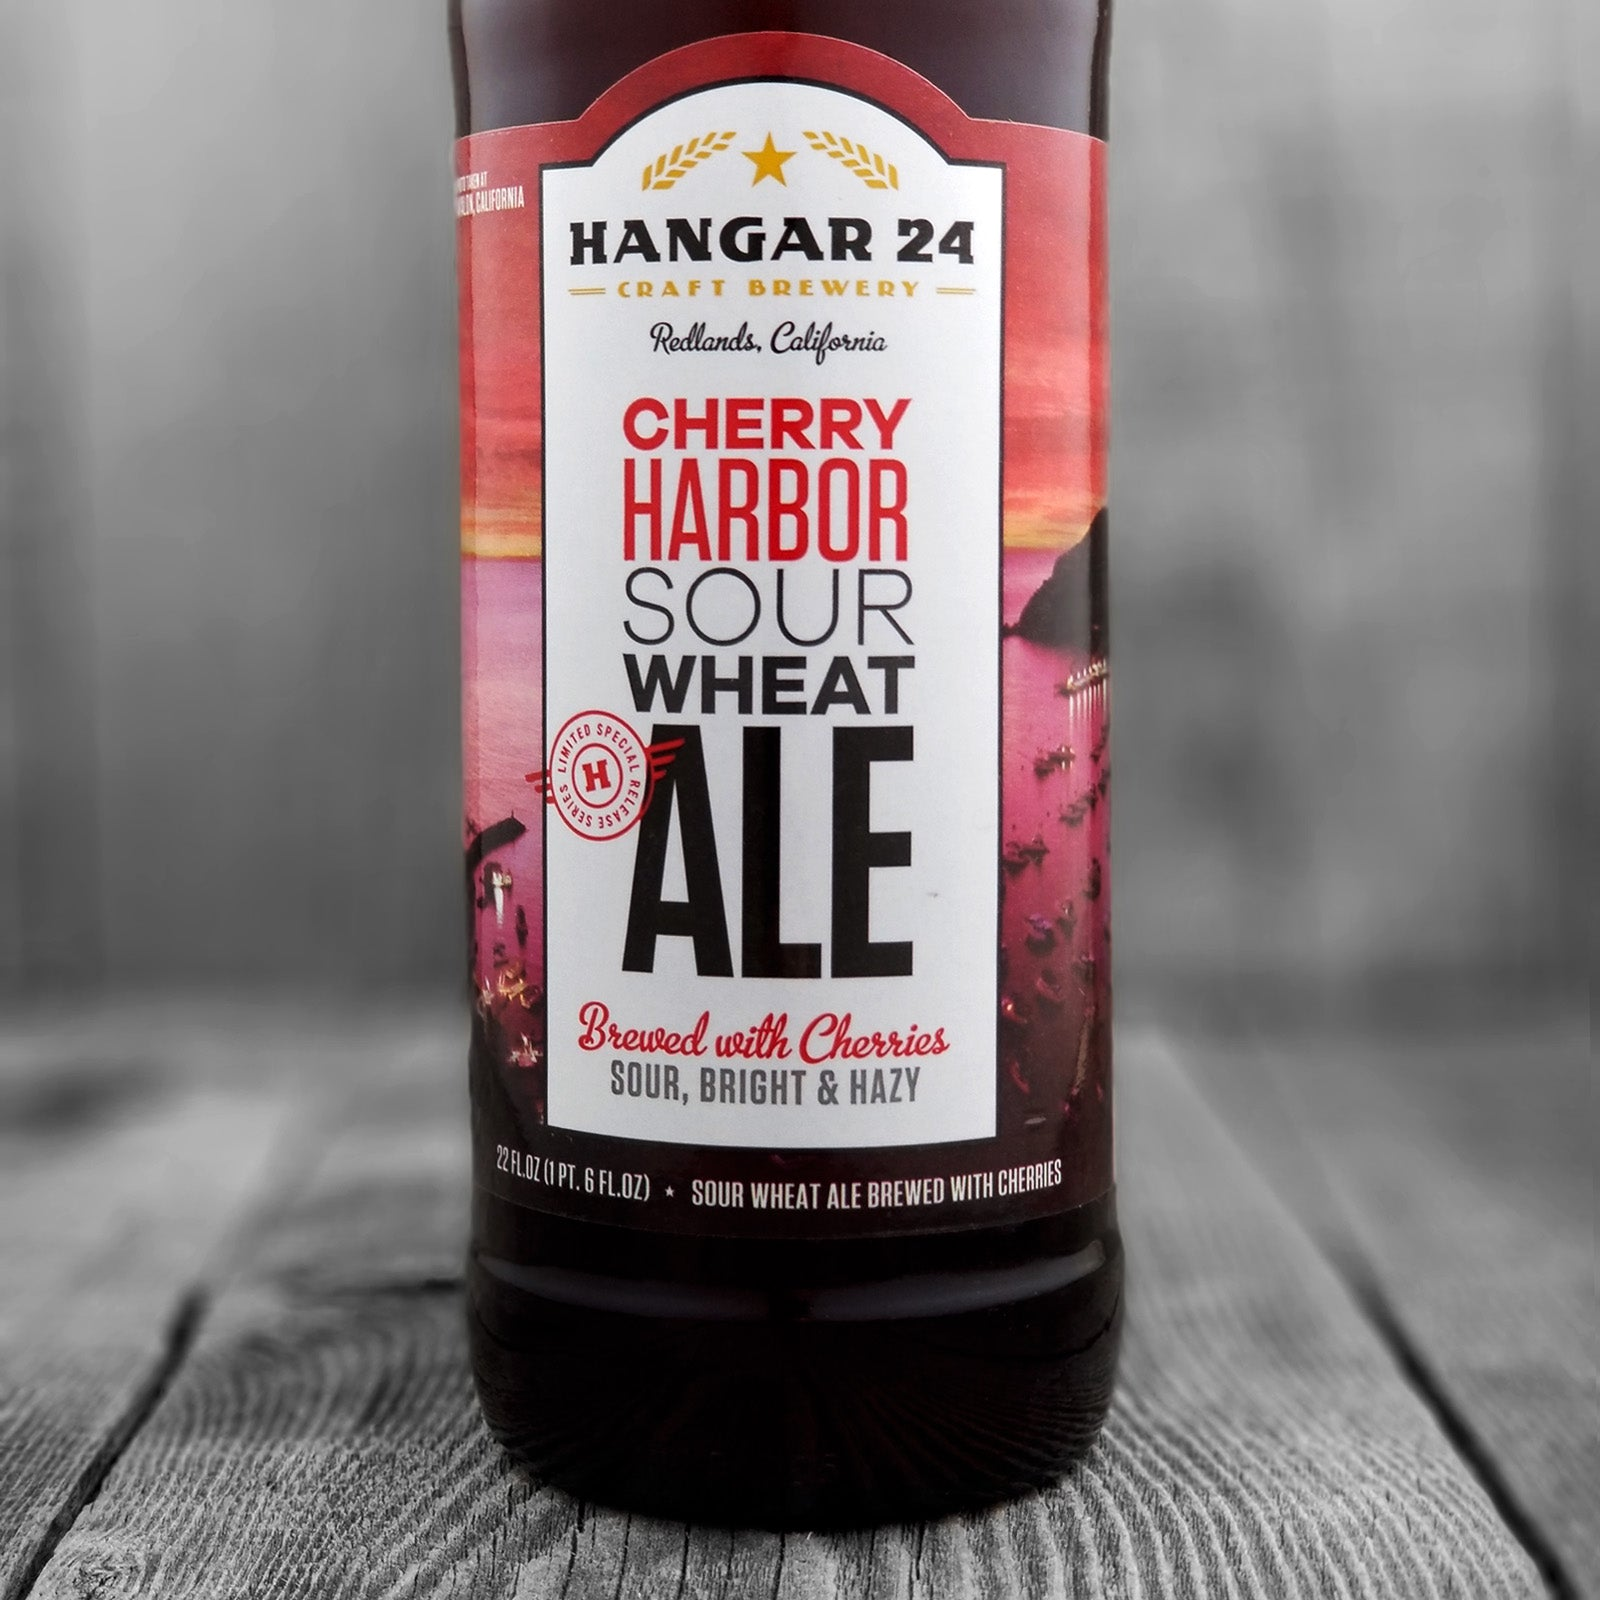 Hangar 24 Craft Brewing